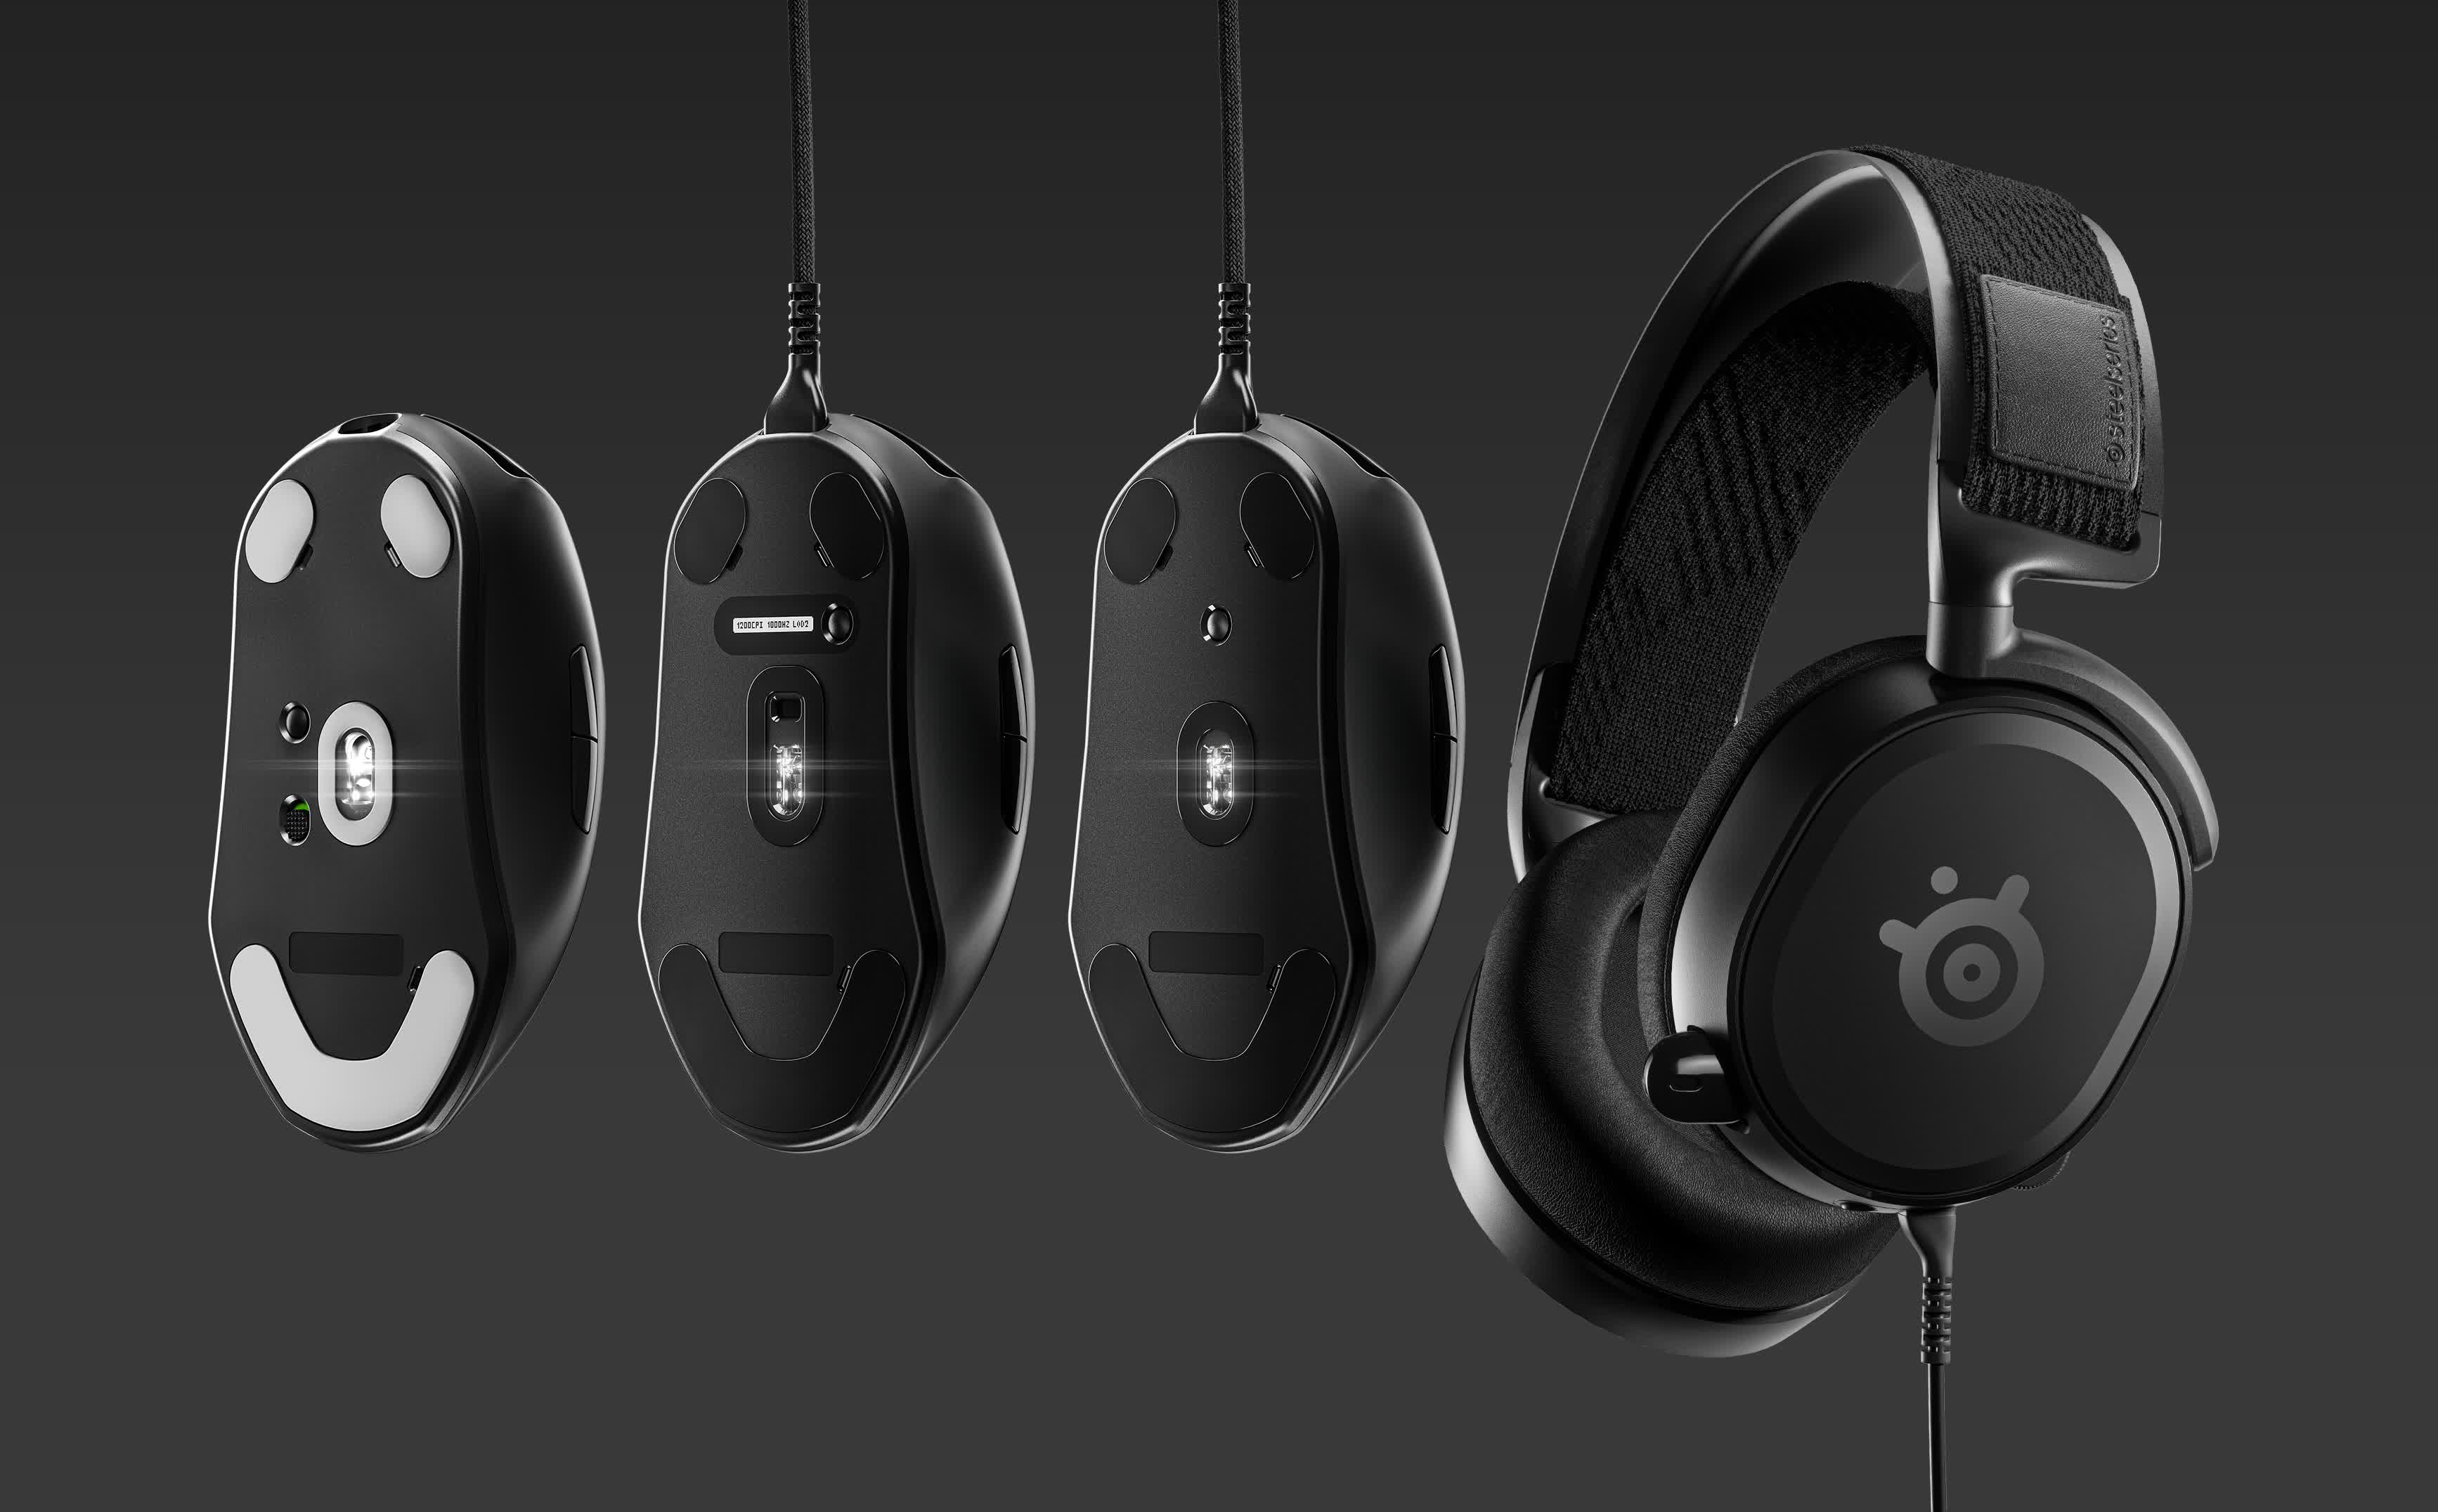 SteelSeries launches three mice, headset under new Prime gaming line